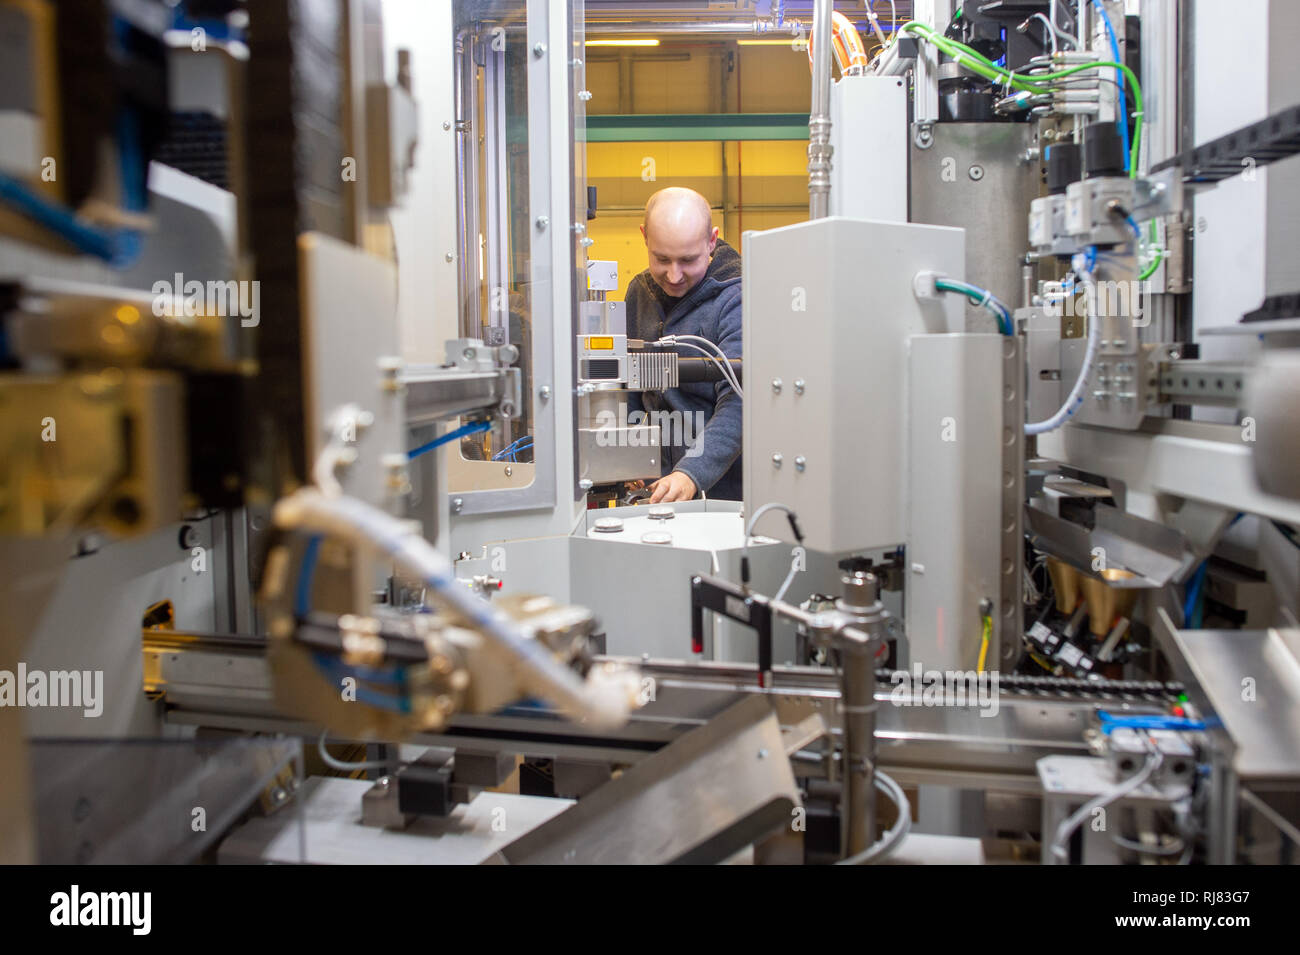 Barleben, Germany. 05th Feb, 2019. A Symacon employee is working on a friction welding machine. Symacon, based in the Börde region of Germany, is investing millions to adapt to current technological changes. For its expansion plans, the company received the corresponding funding commitments from the state. The company manufactures machines that use the so-called friction welding process. Credit: Klaus-Dietmar Gabbert/dpa-Zentralbild/ZB/dpa/Alamy Live News - Stock Image